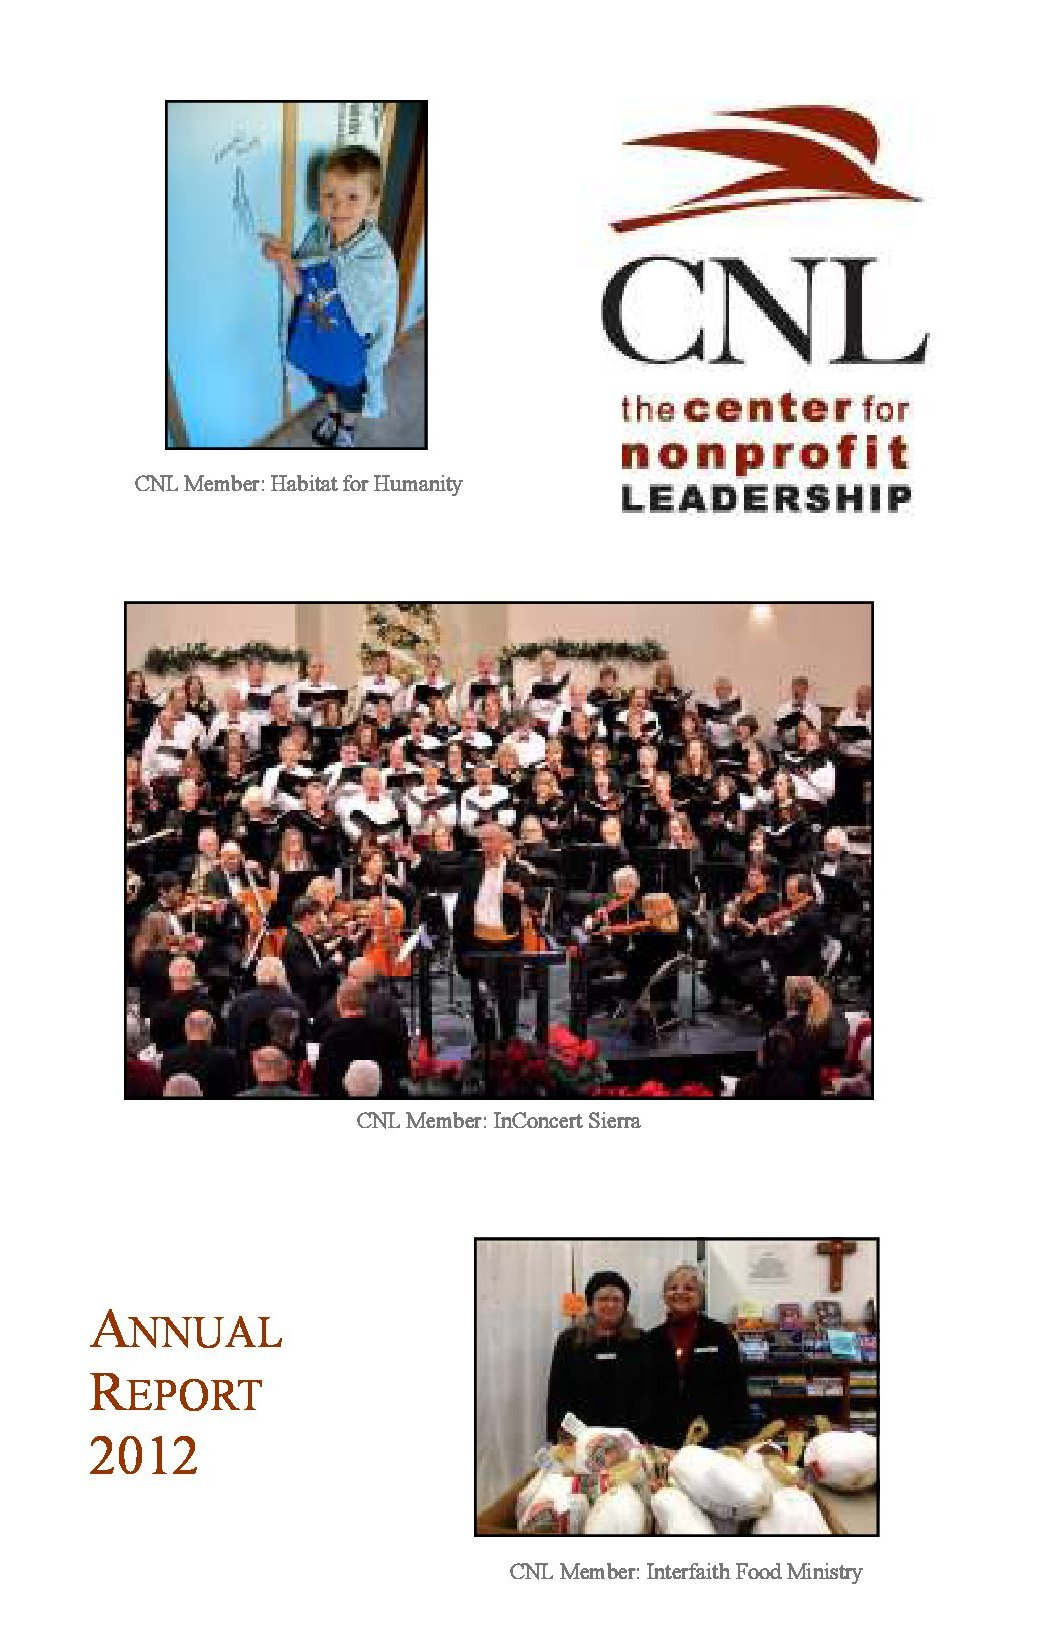 Annual_Report_CNL_2012_page_1v2